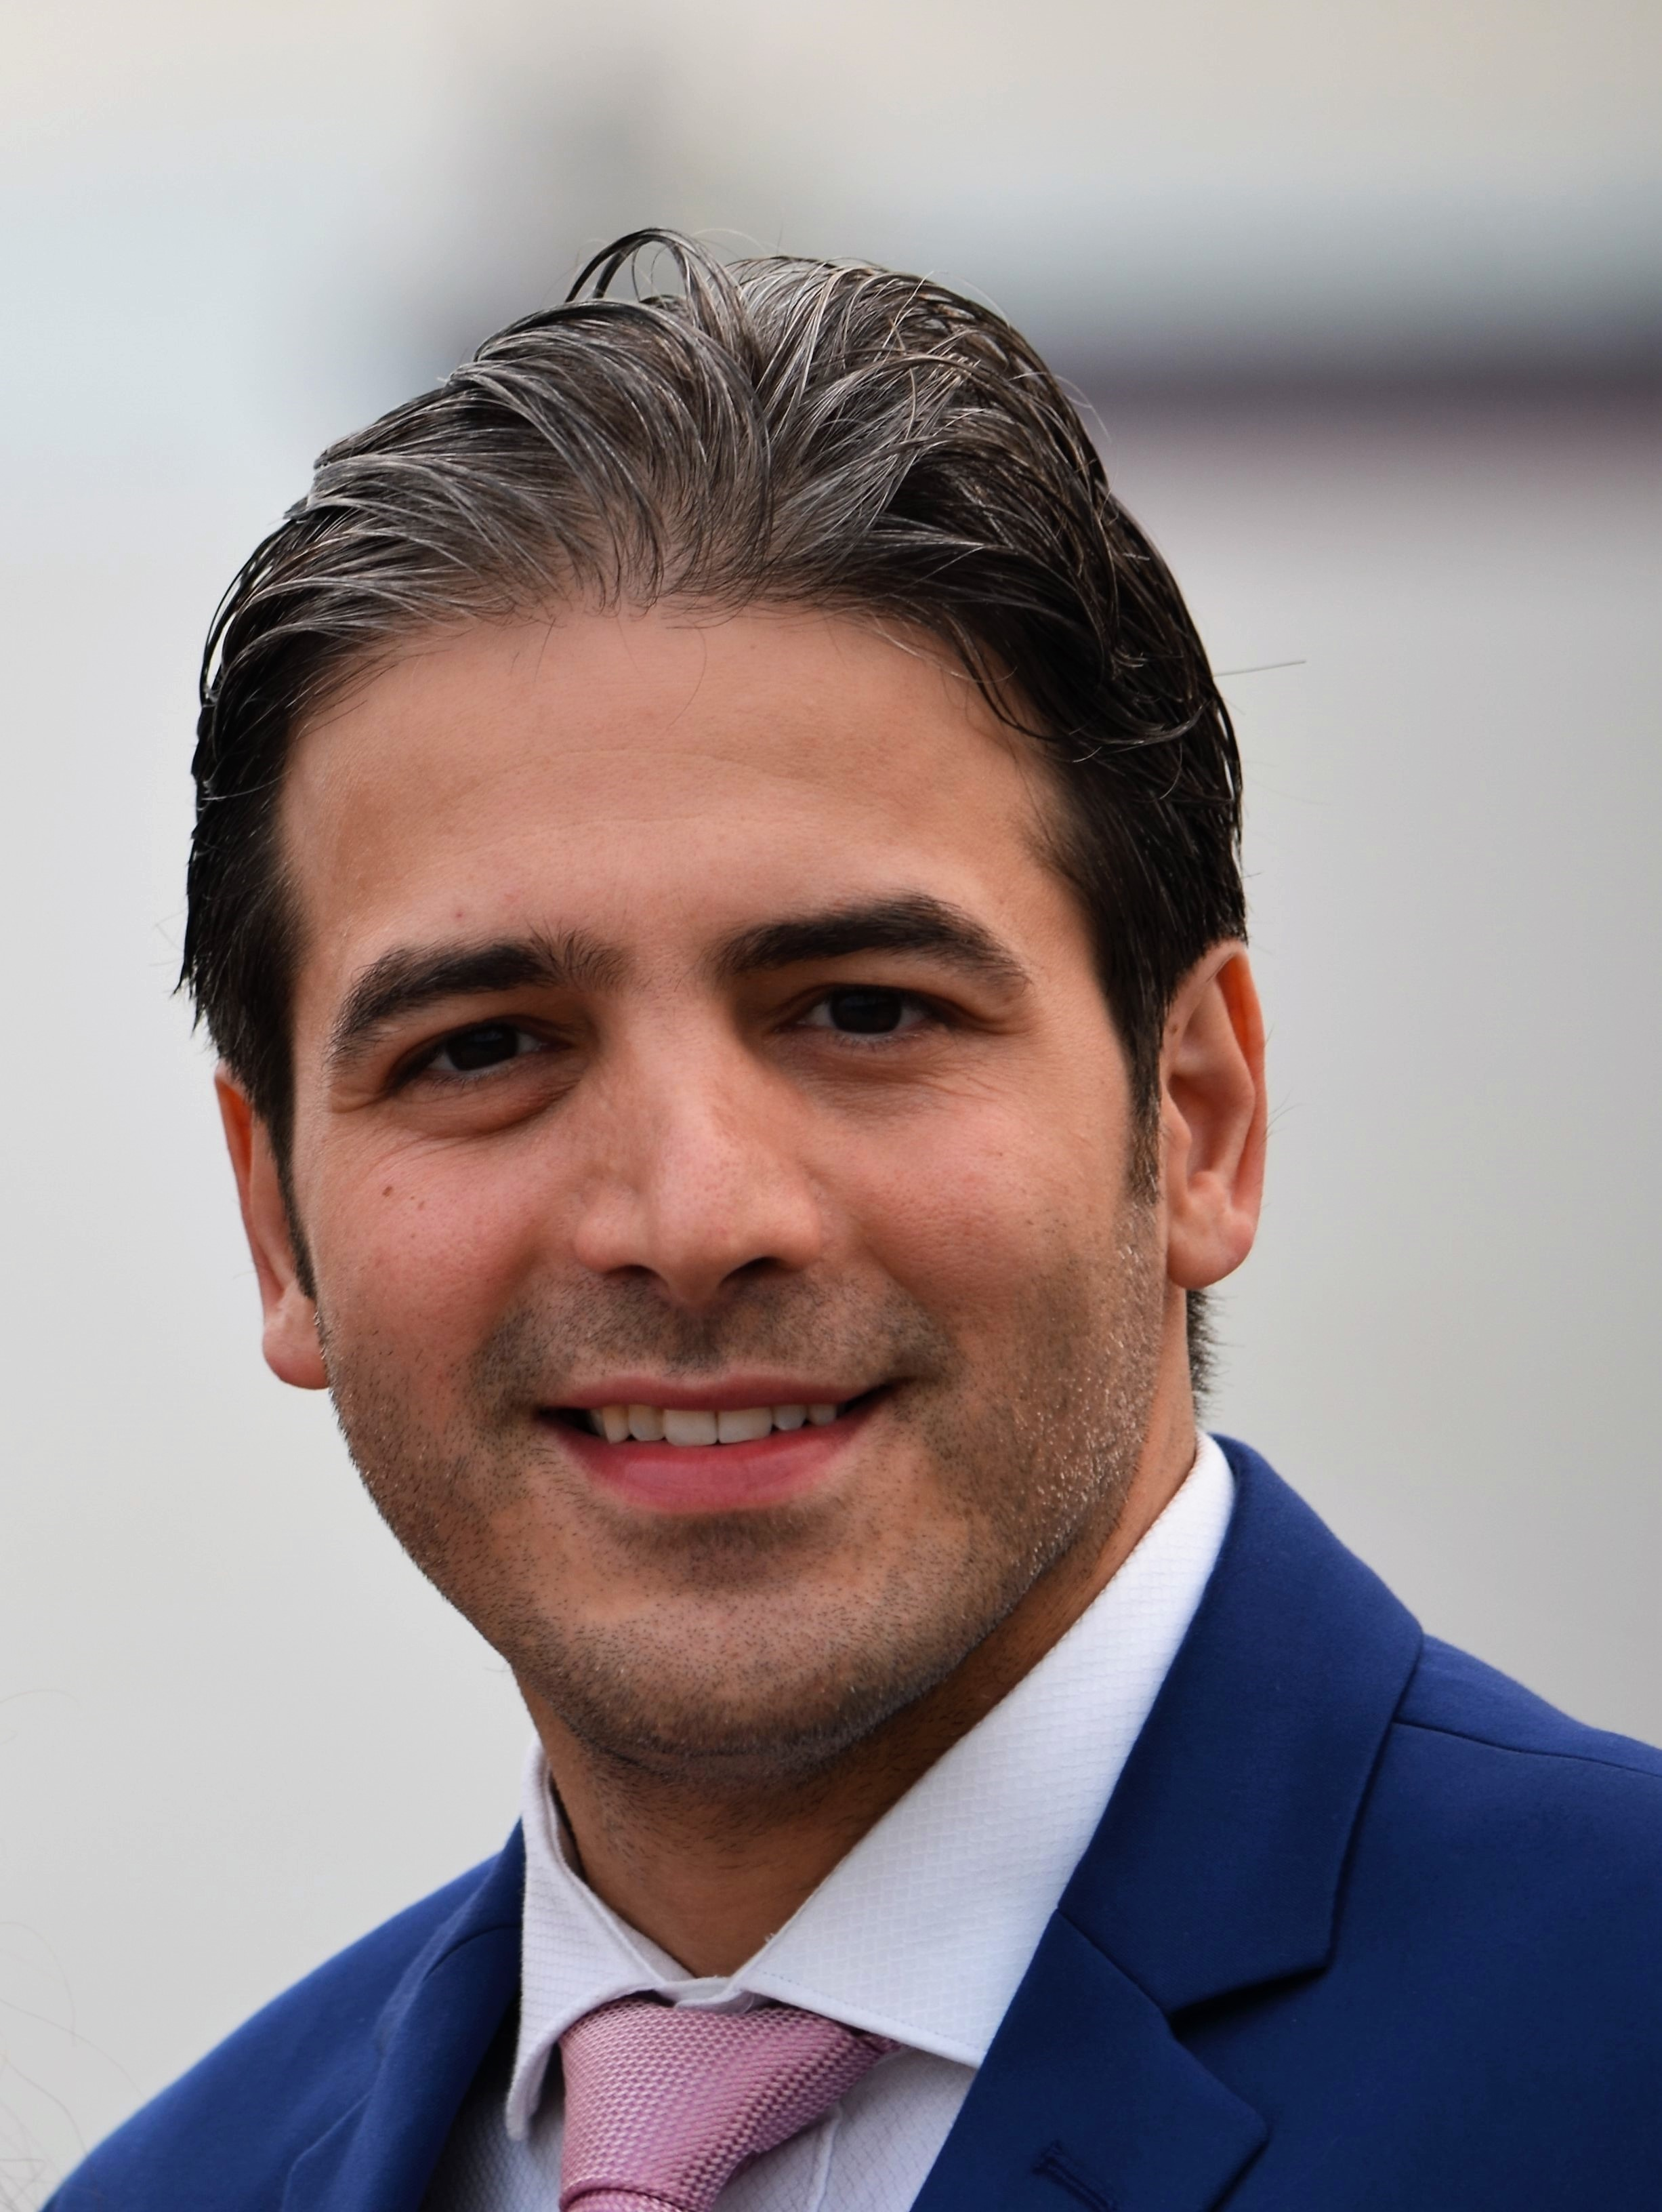 Reza Tavakoli is the president and CEO of Avestec.